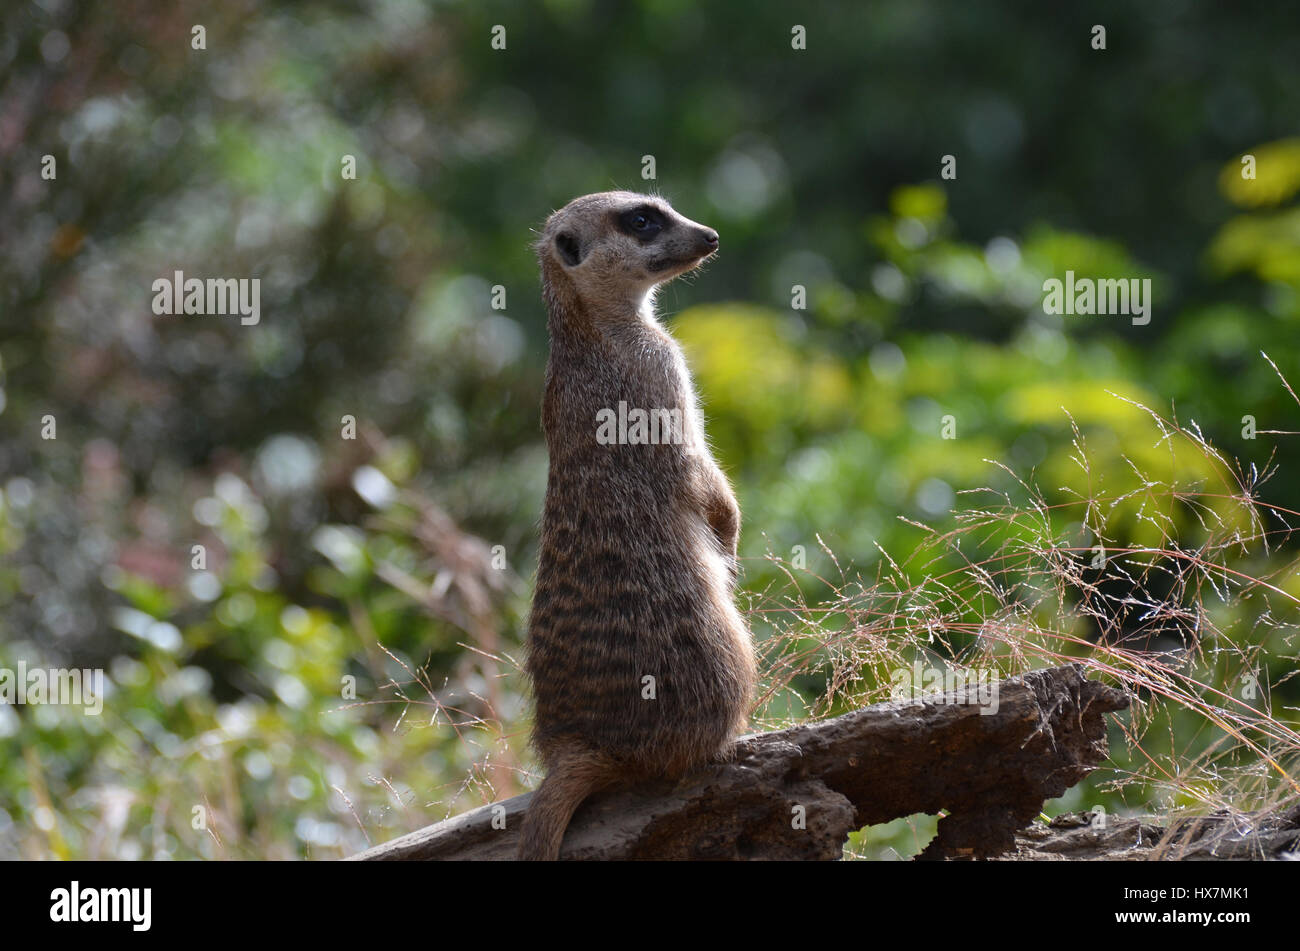 Meerkat sentry on alert and standing at attention. - Stock Image